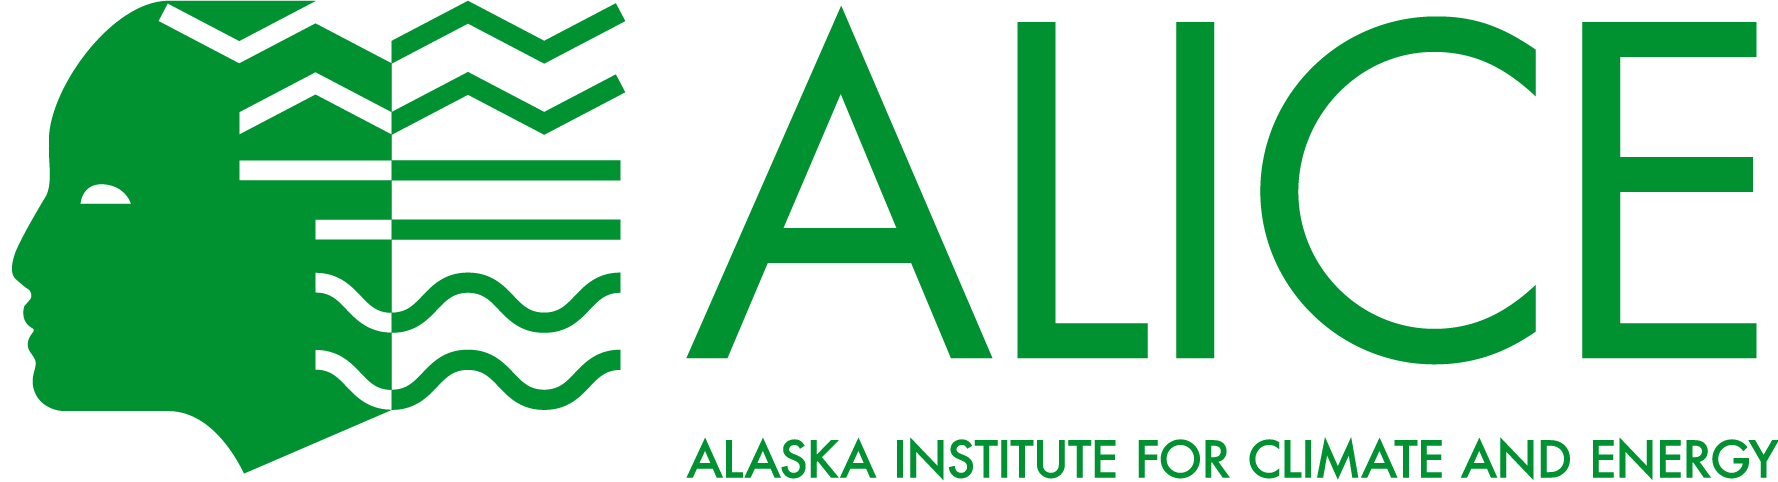 ALICE logo - A person with long wavy green hair